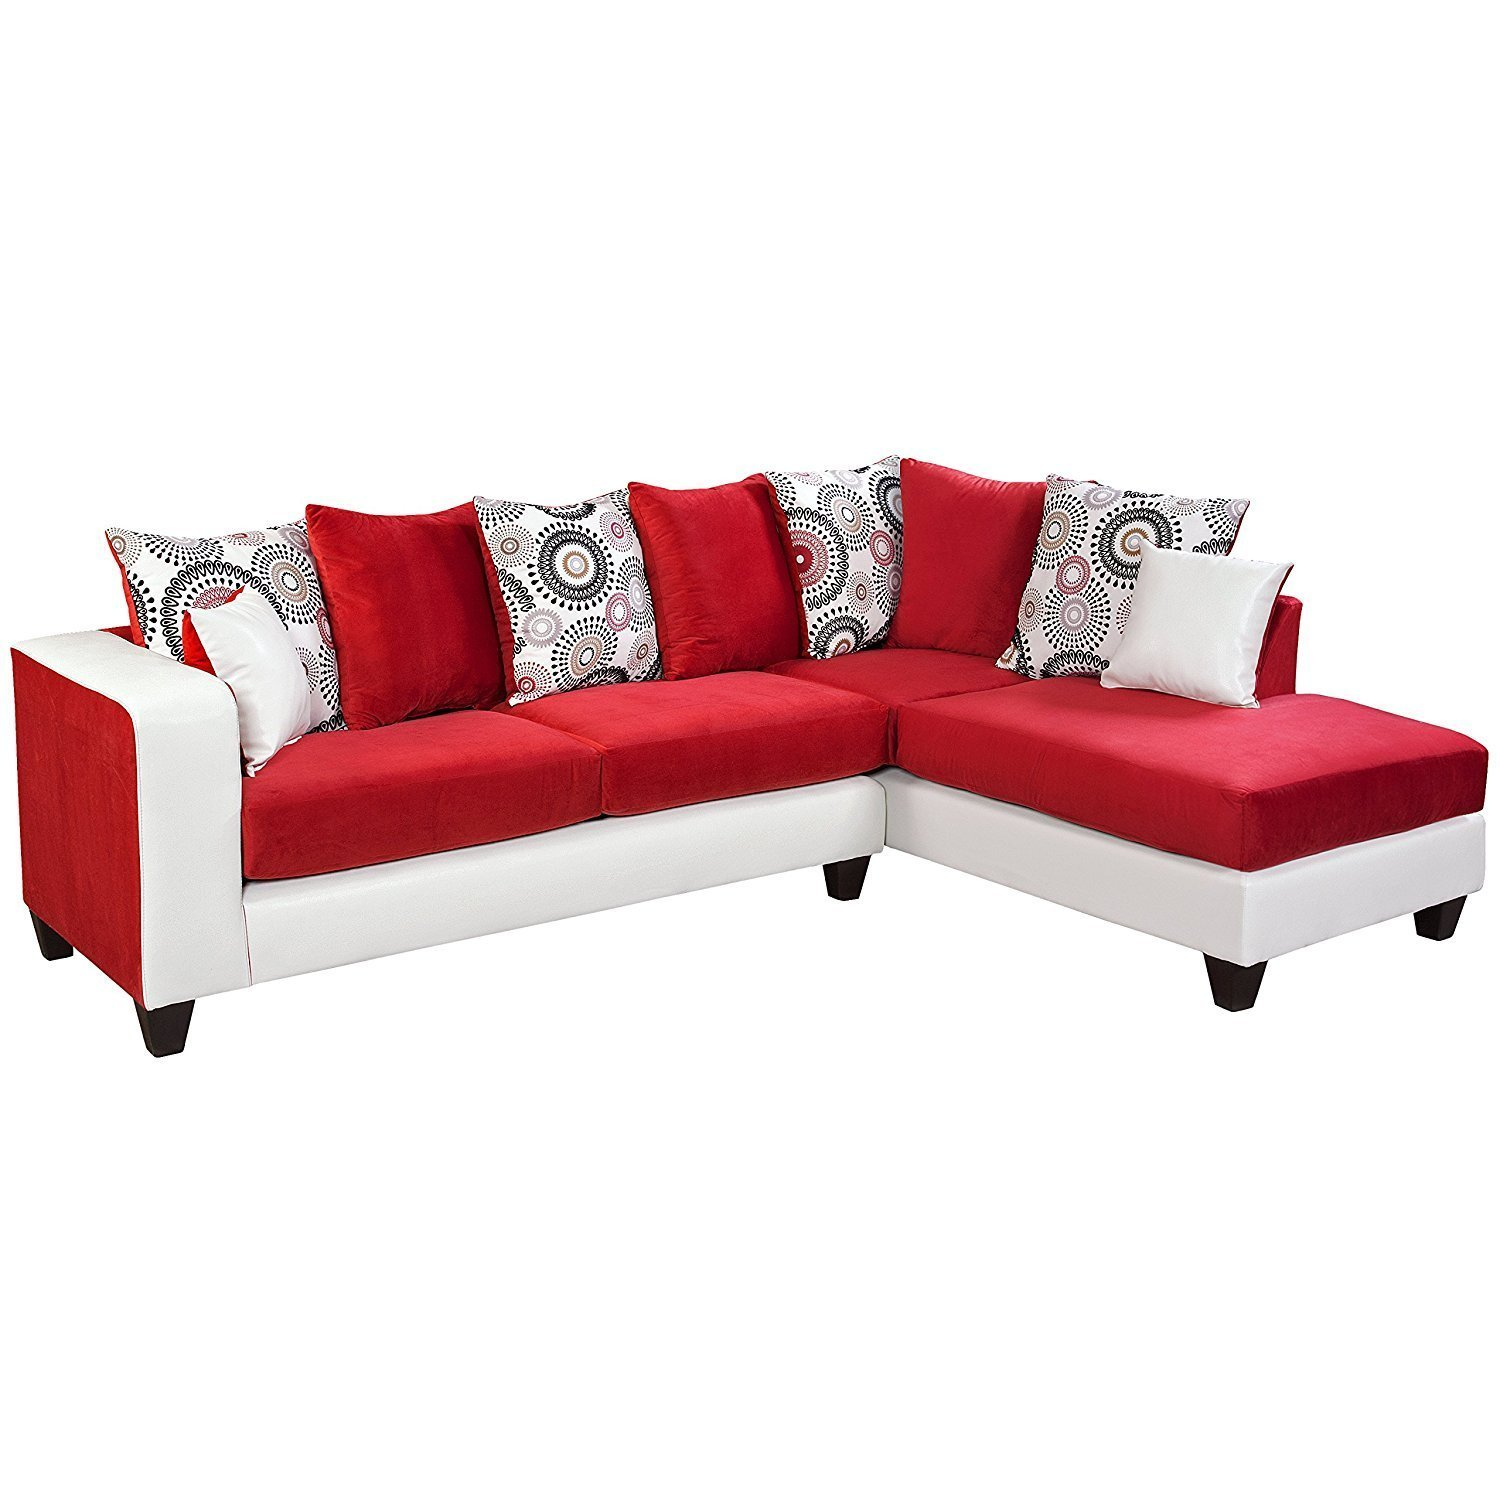 sectional sofa purchase quilted furniture protector velvet couches home design